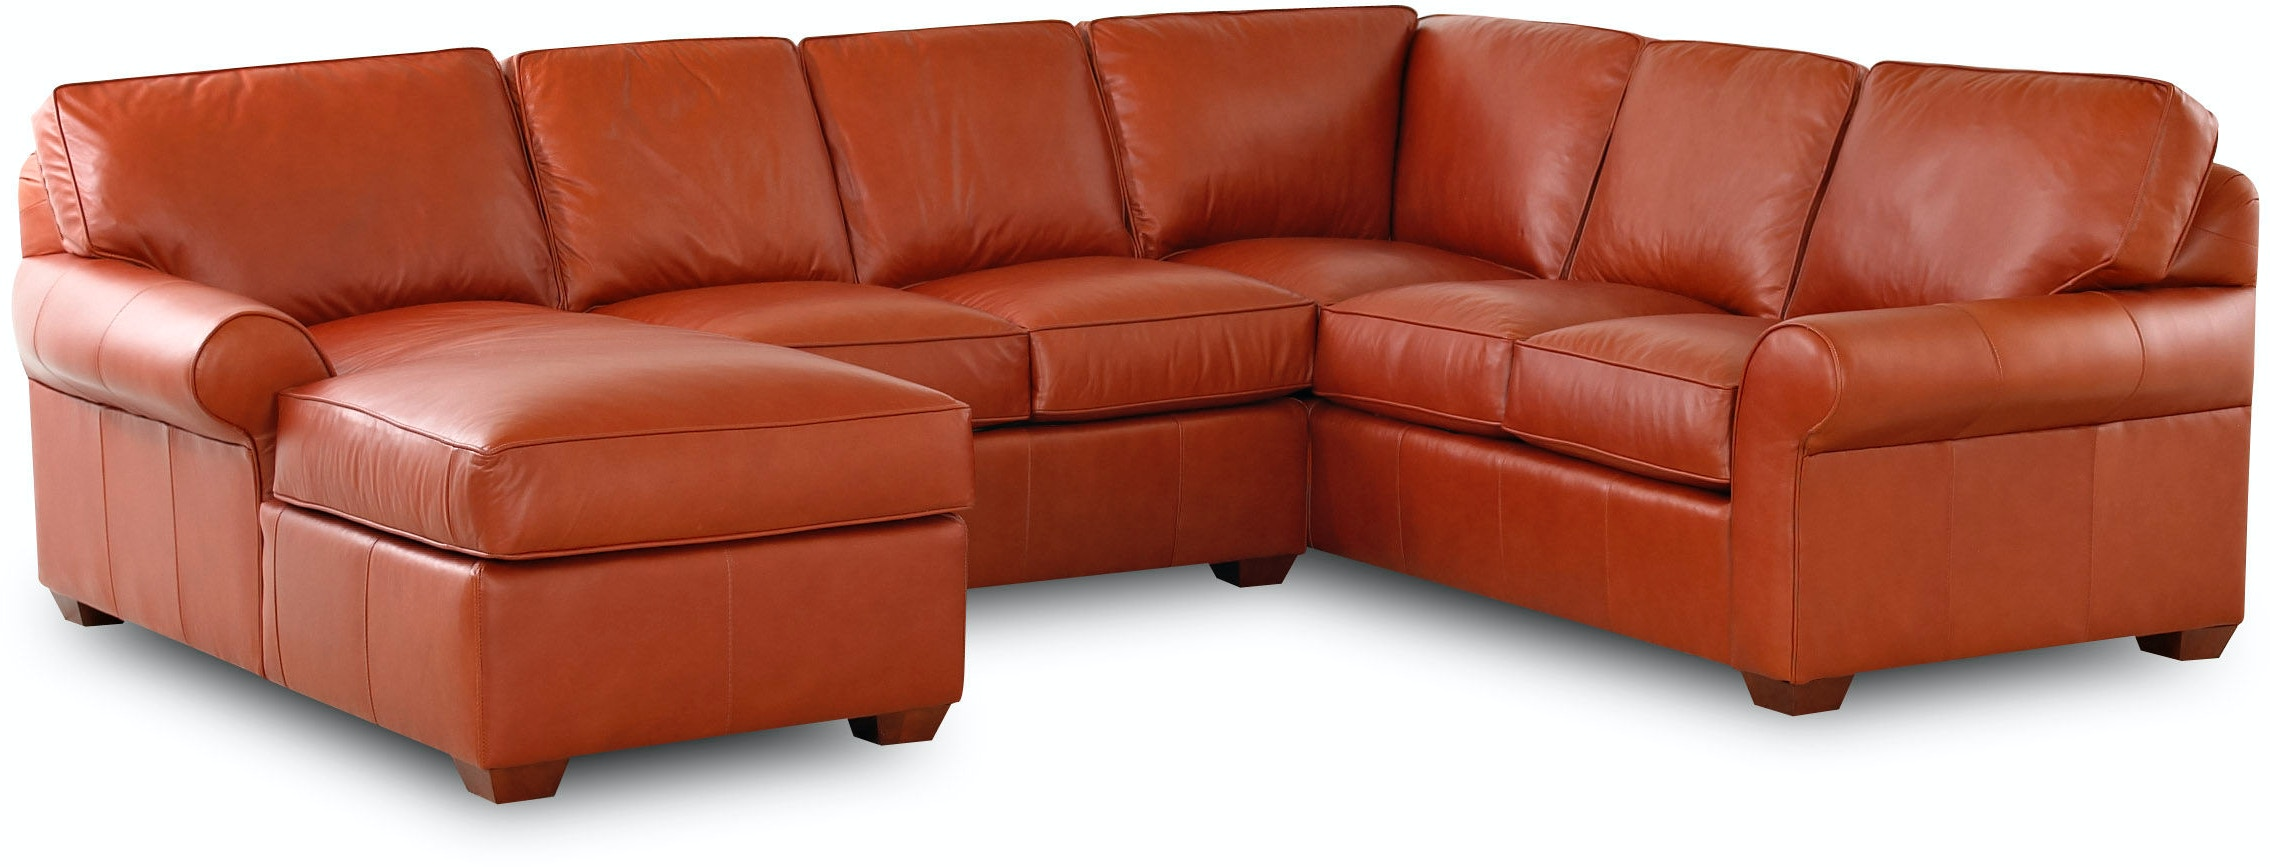 Comfort Design Living Room Journey Sectional Cl4004 Sect Whitley  ~ Sectional Sofa Raleigh Nc